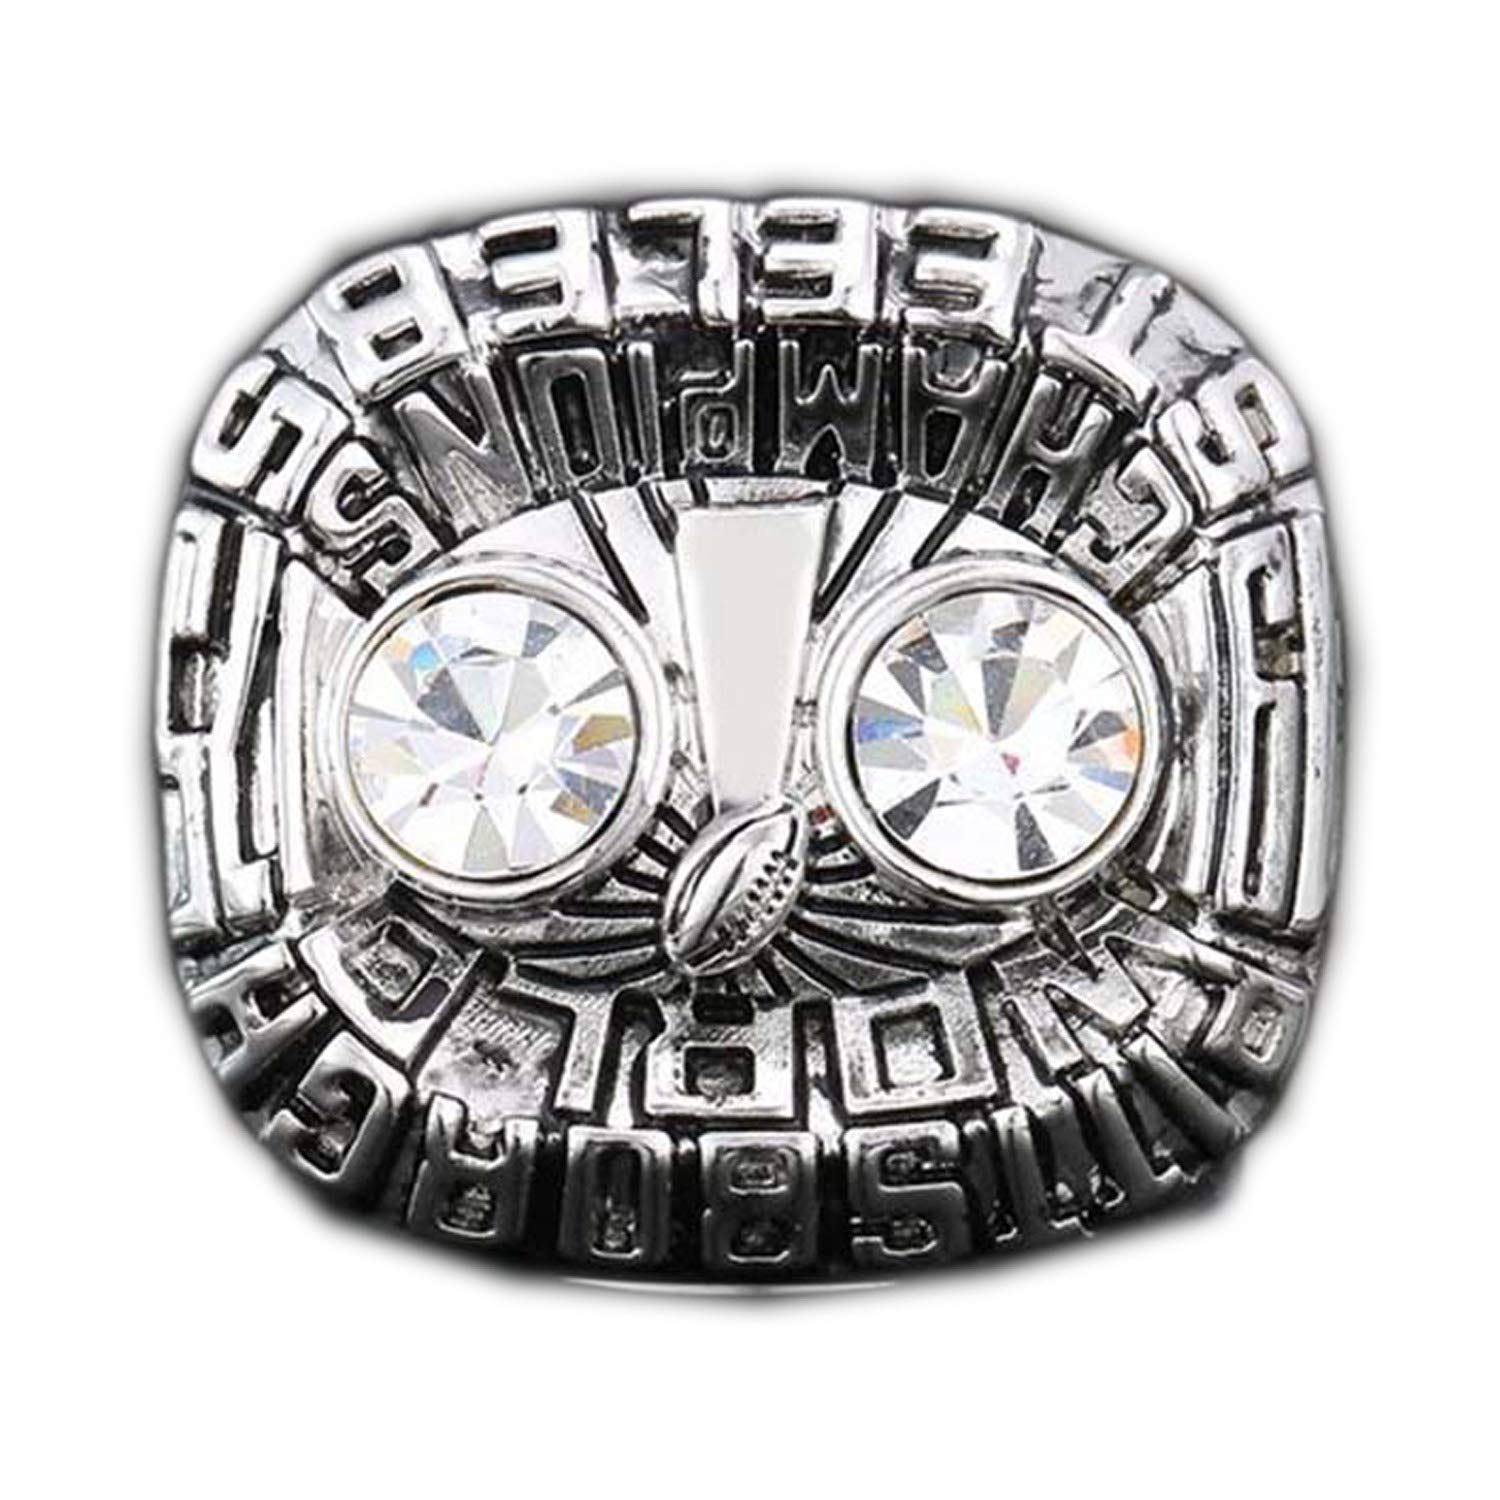 Silver Gloral HIF 1975 Pittsburgh Steelers Super Bowl Championship Ring Collectible for Gifts Size 11 Without Box